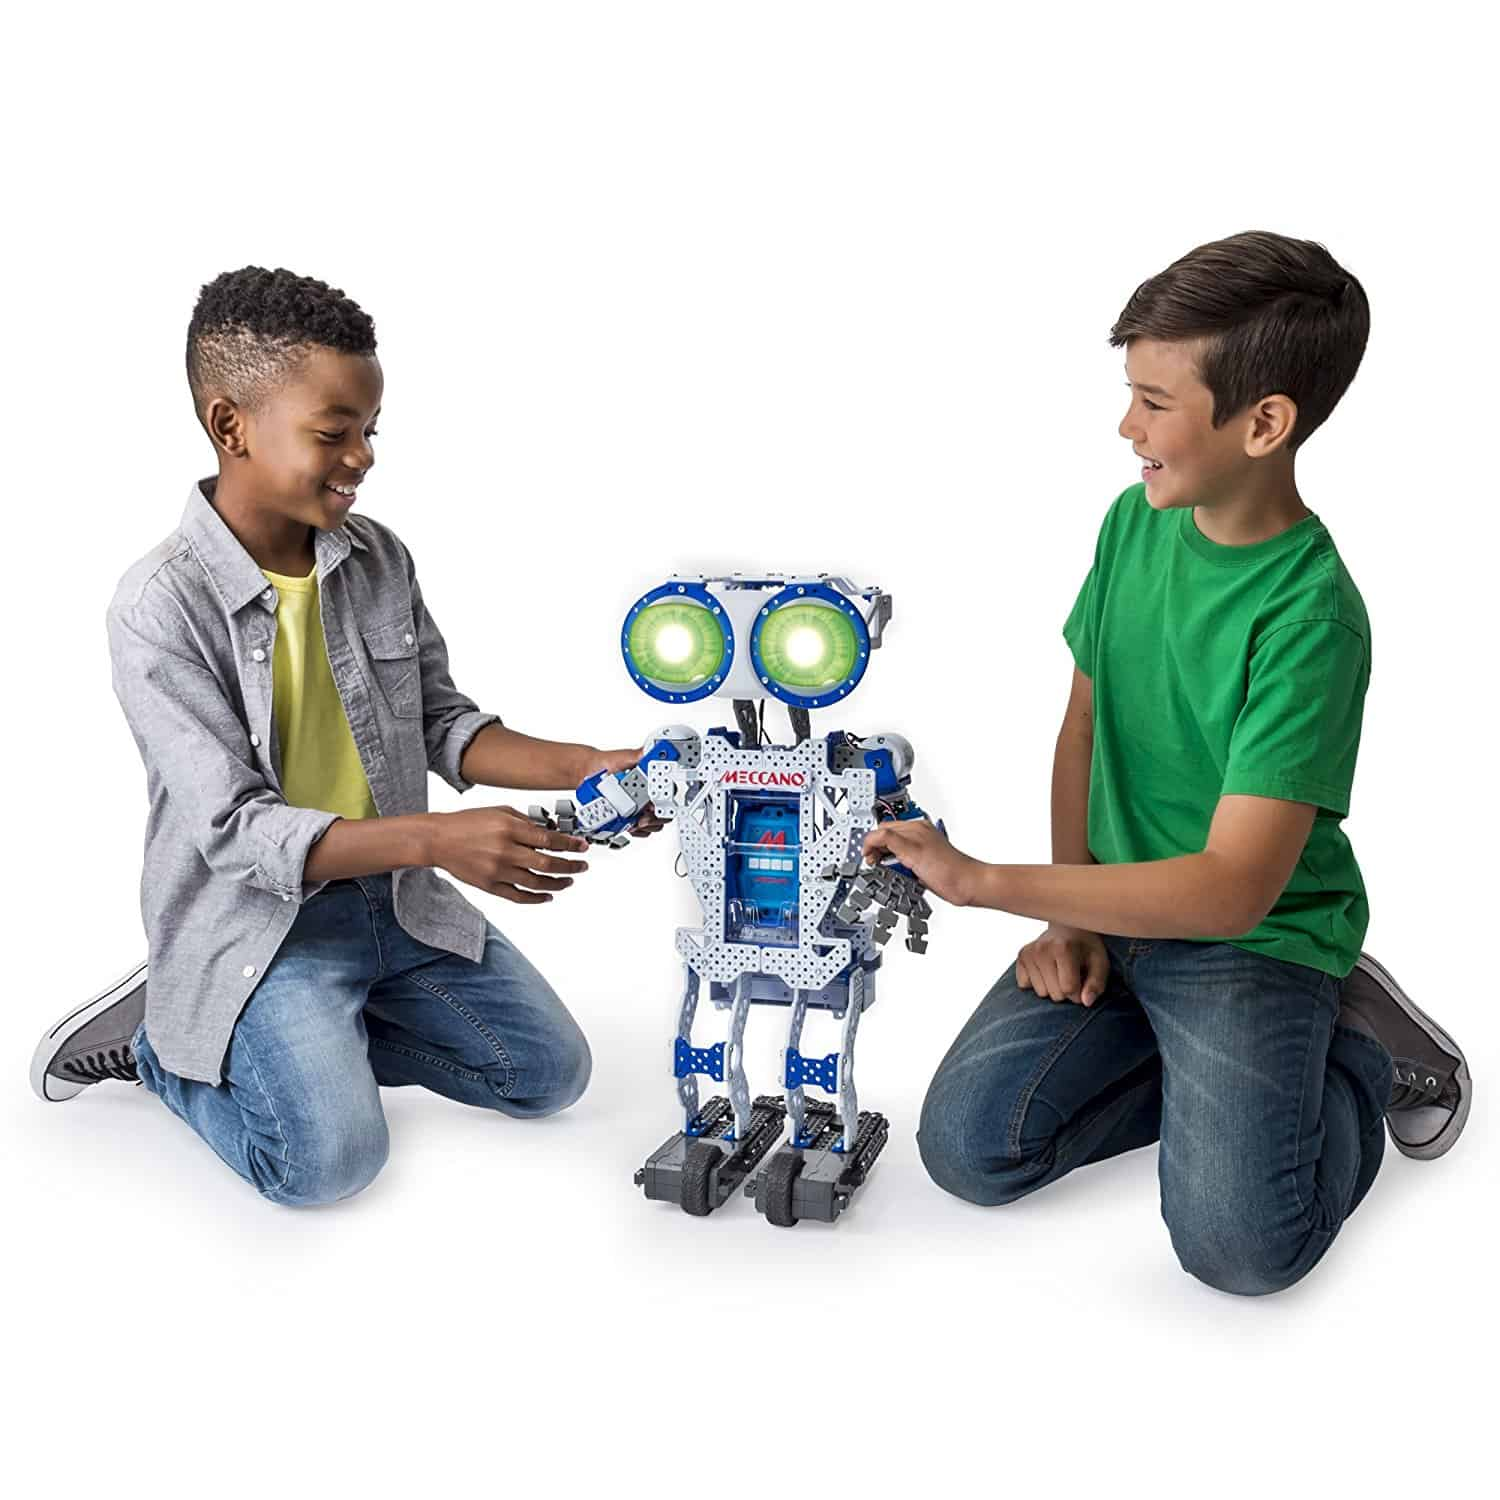 The Best Of Stem toys for 10 Year Old Pictures